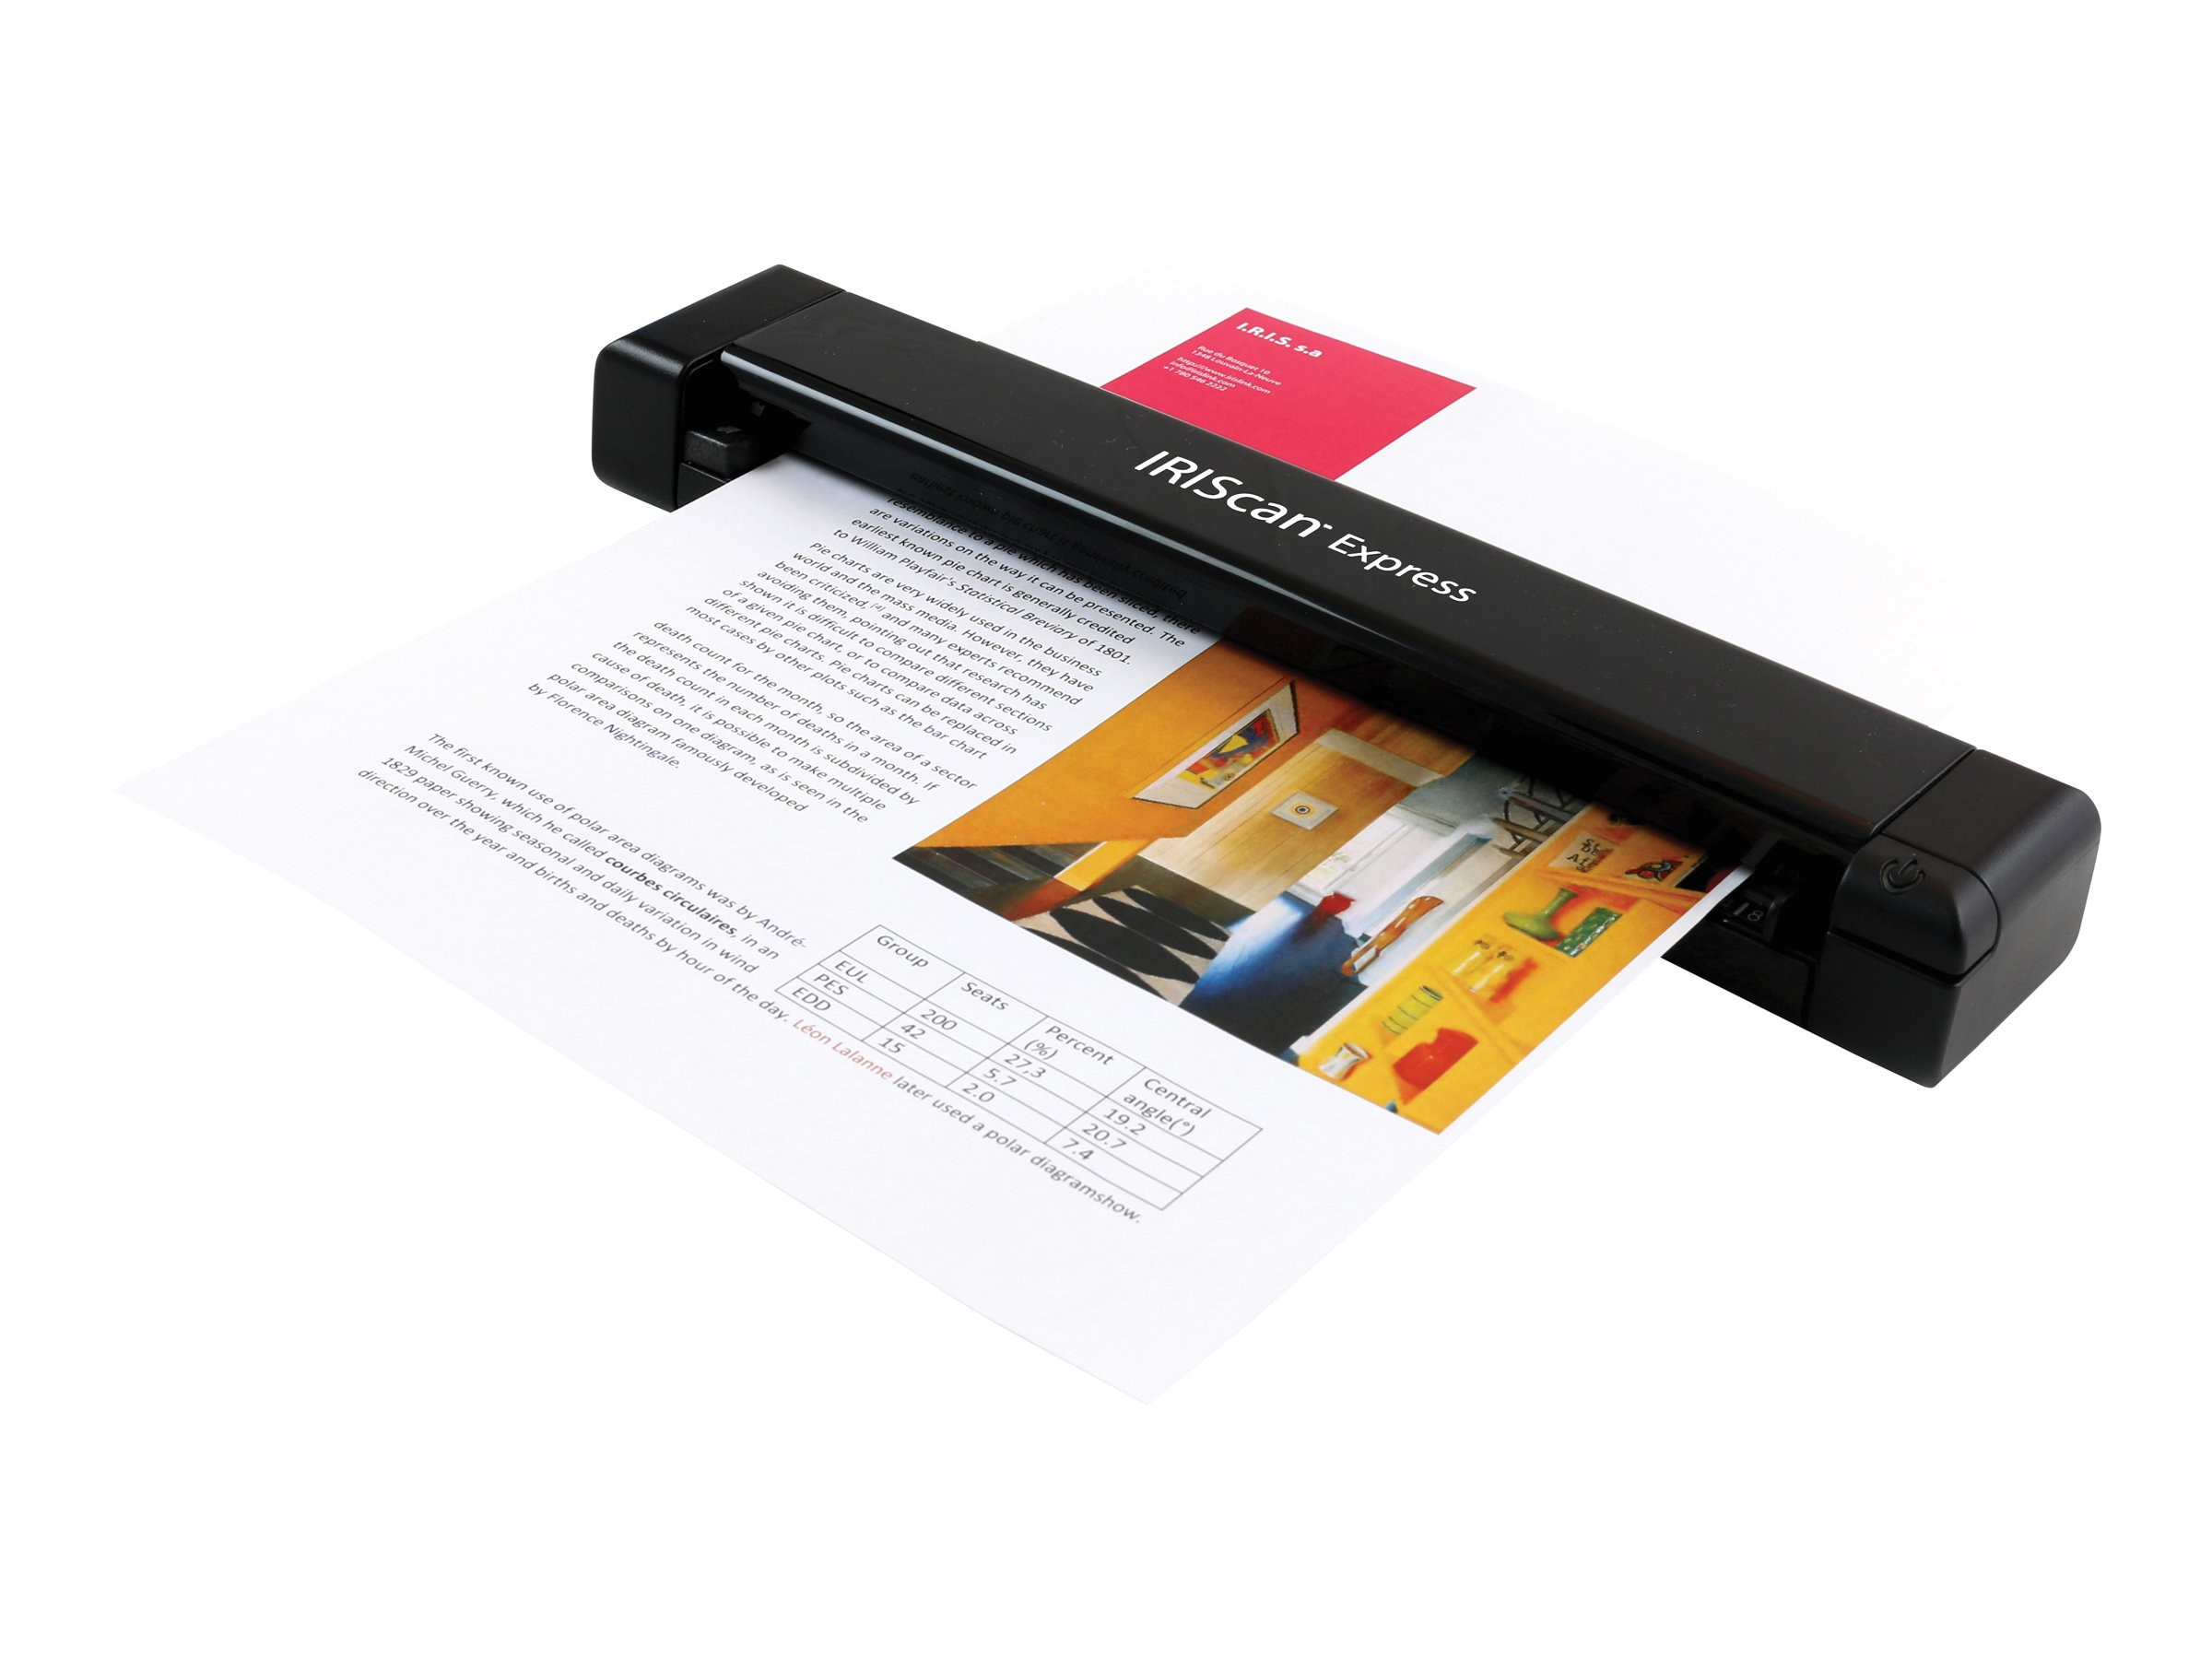 IRIS Iriscan Express 4 Portable Sheetfed USB Scanner